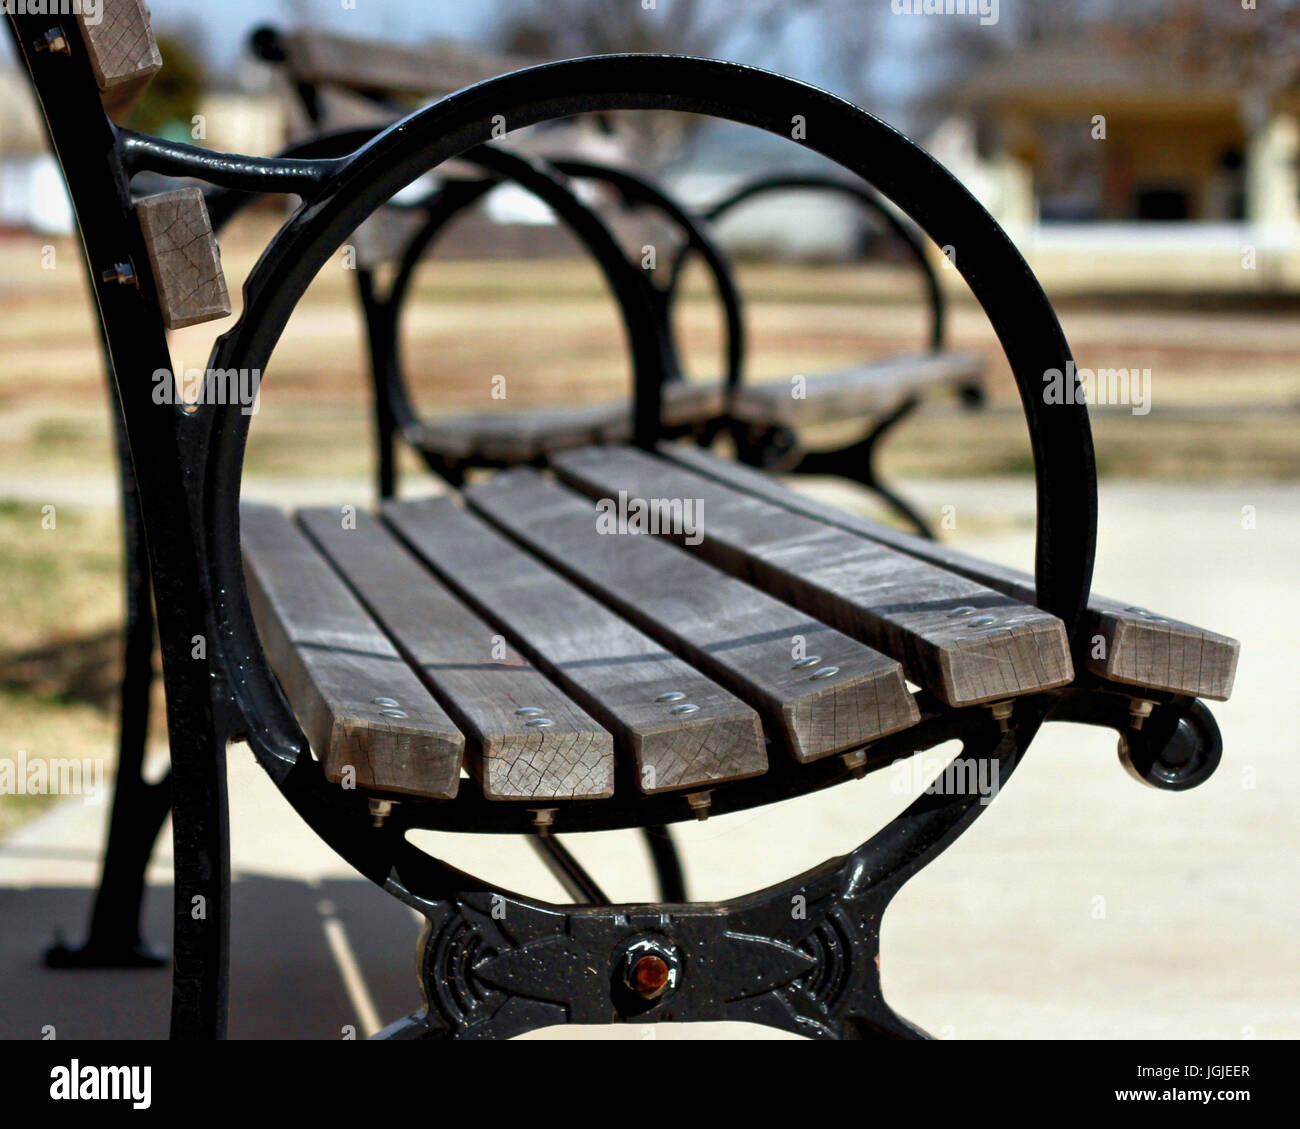 A view through the round armrests of park benches in Oklahoma City. - Stock Image